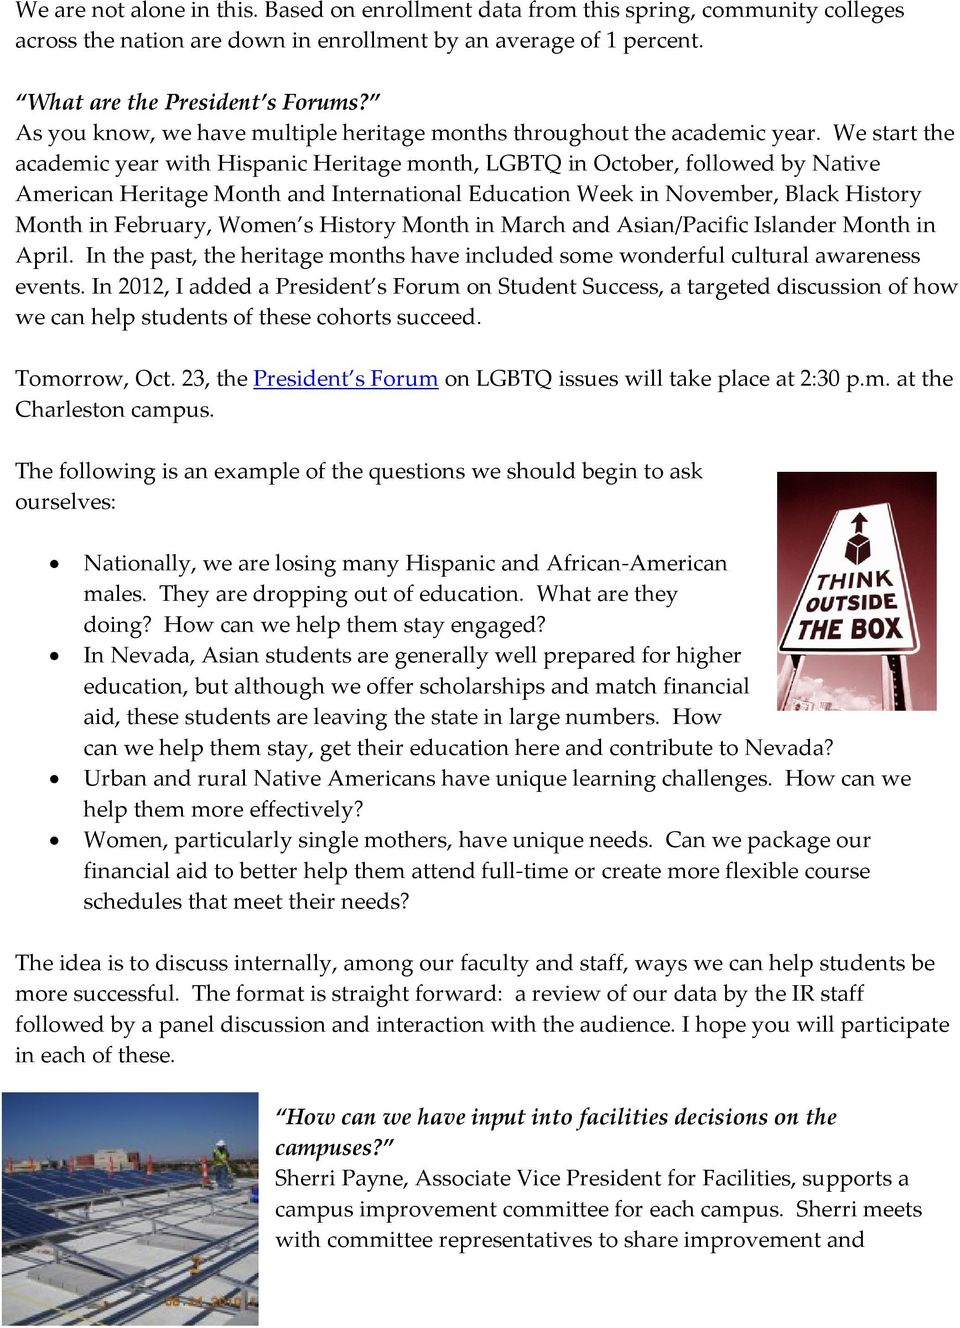 We start the academic year with Hispanic Heritage month, LGBTQ in October, followed by Native American Heritage Month and International Education Week in November, Black History Month in February,